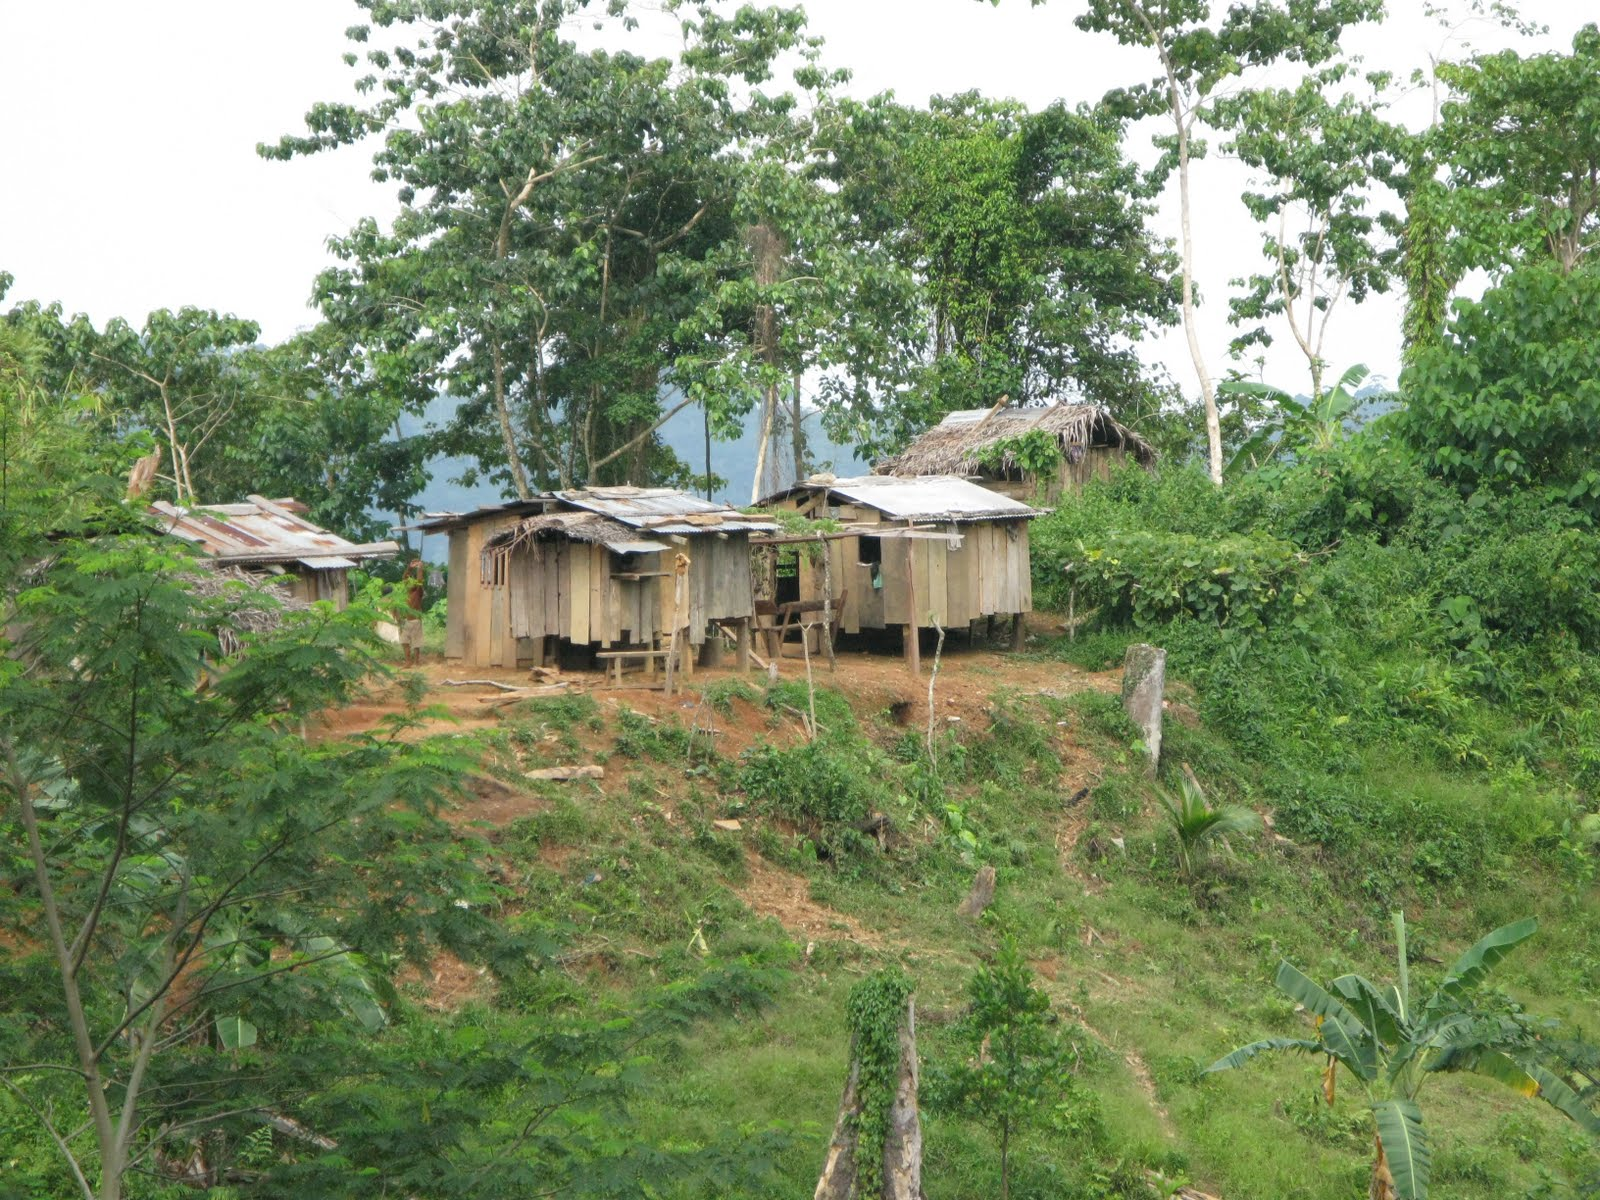 Image of a cluster of houses in rural Philippines